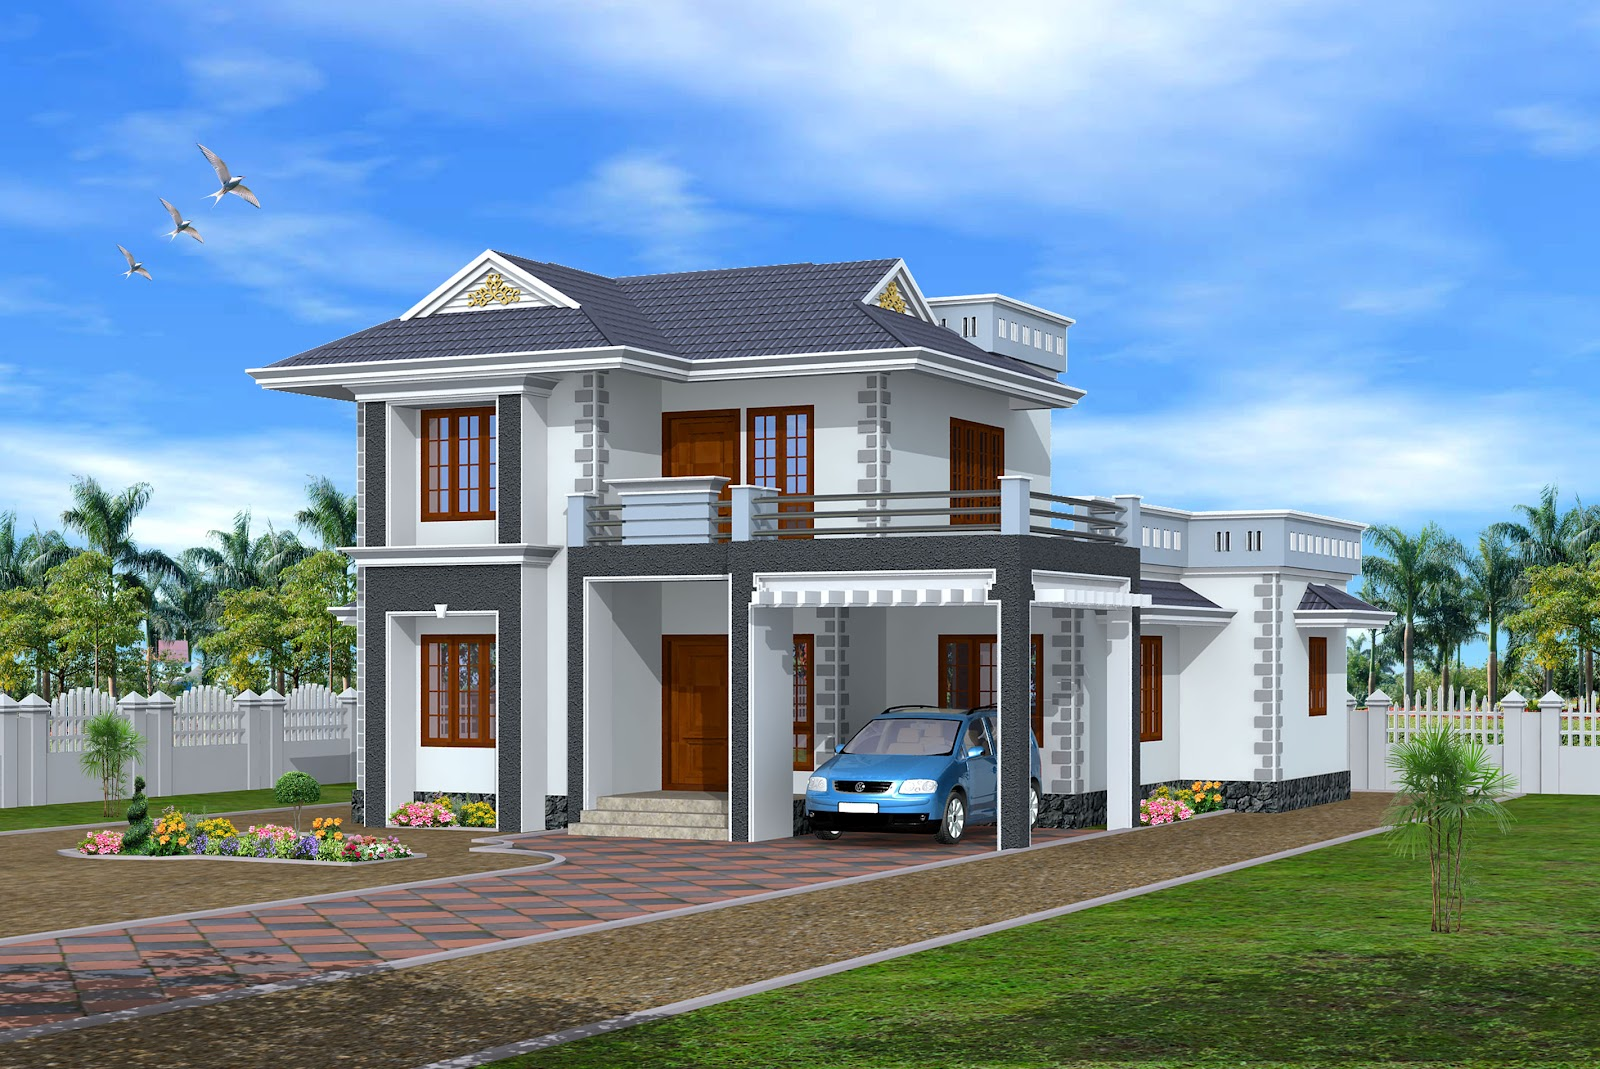 New home designs latest modern homes exterior designs views for Small homes exterior design